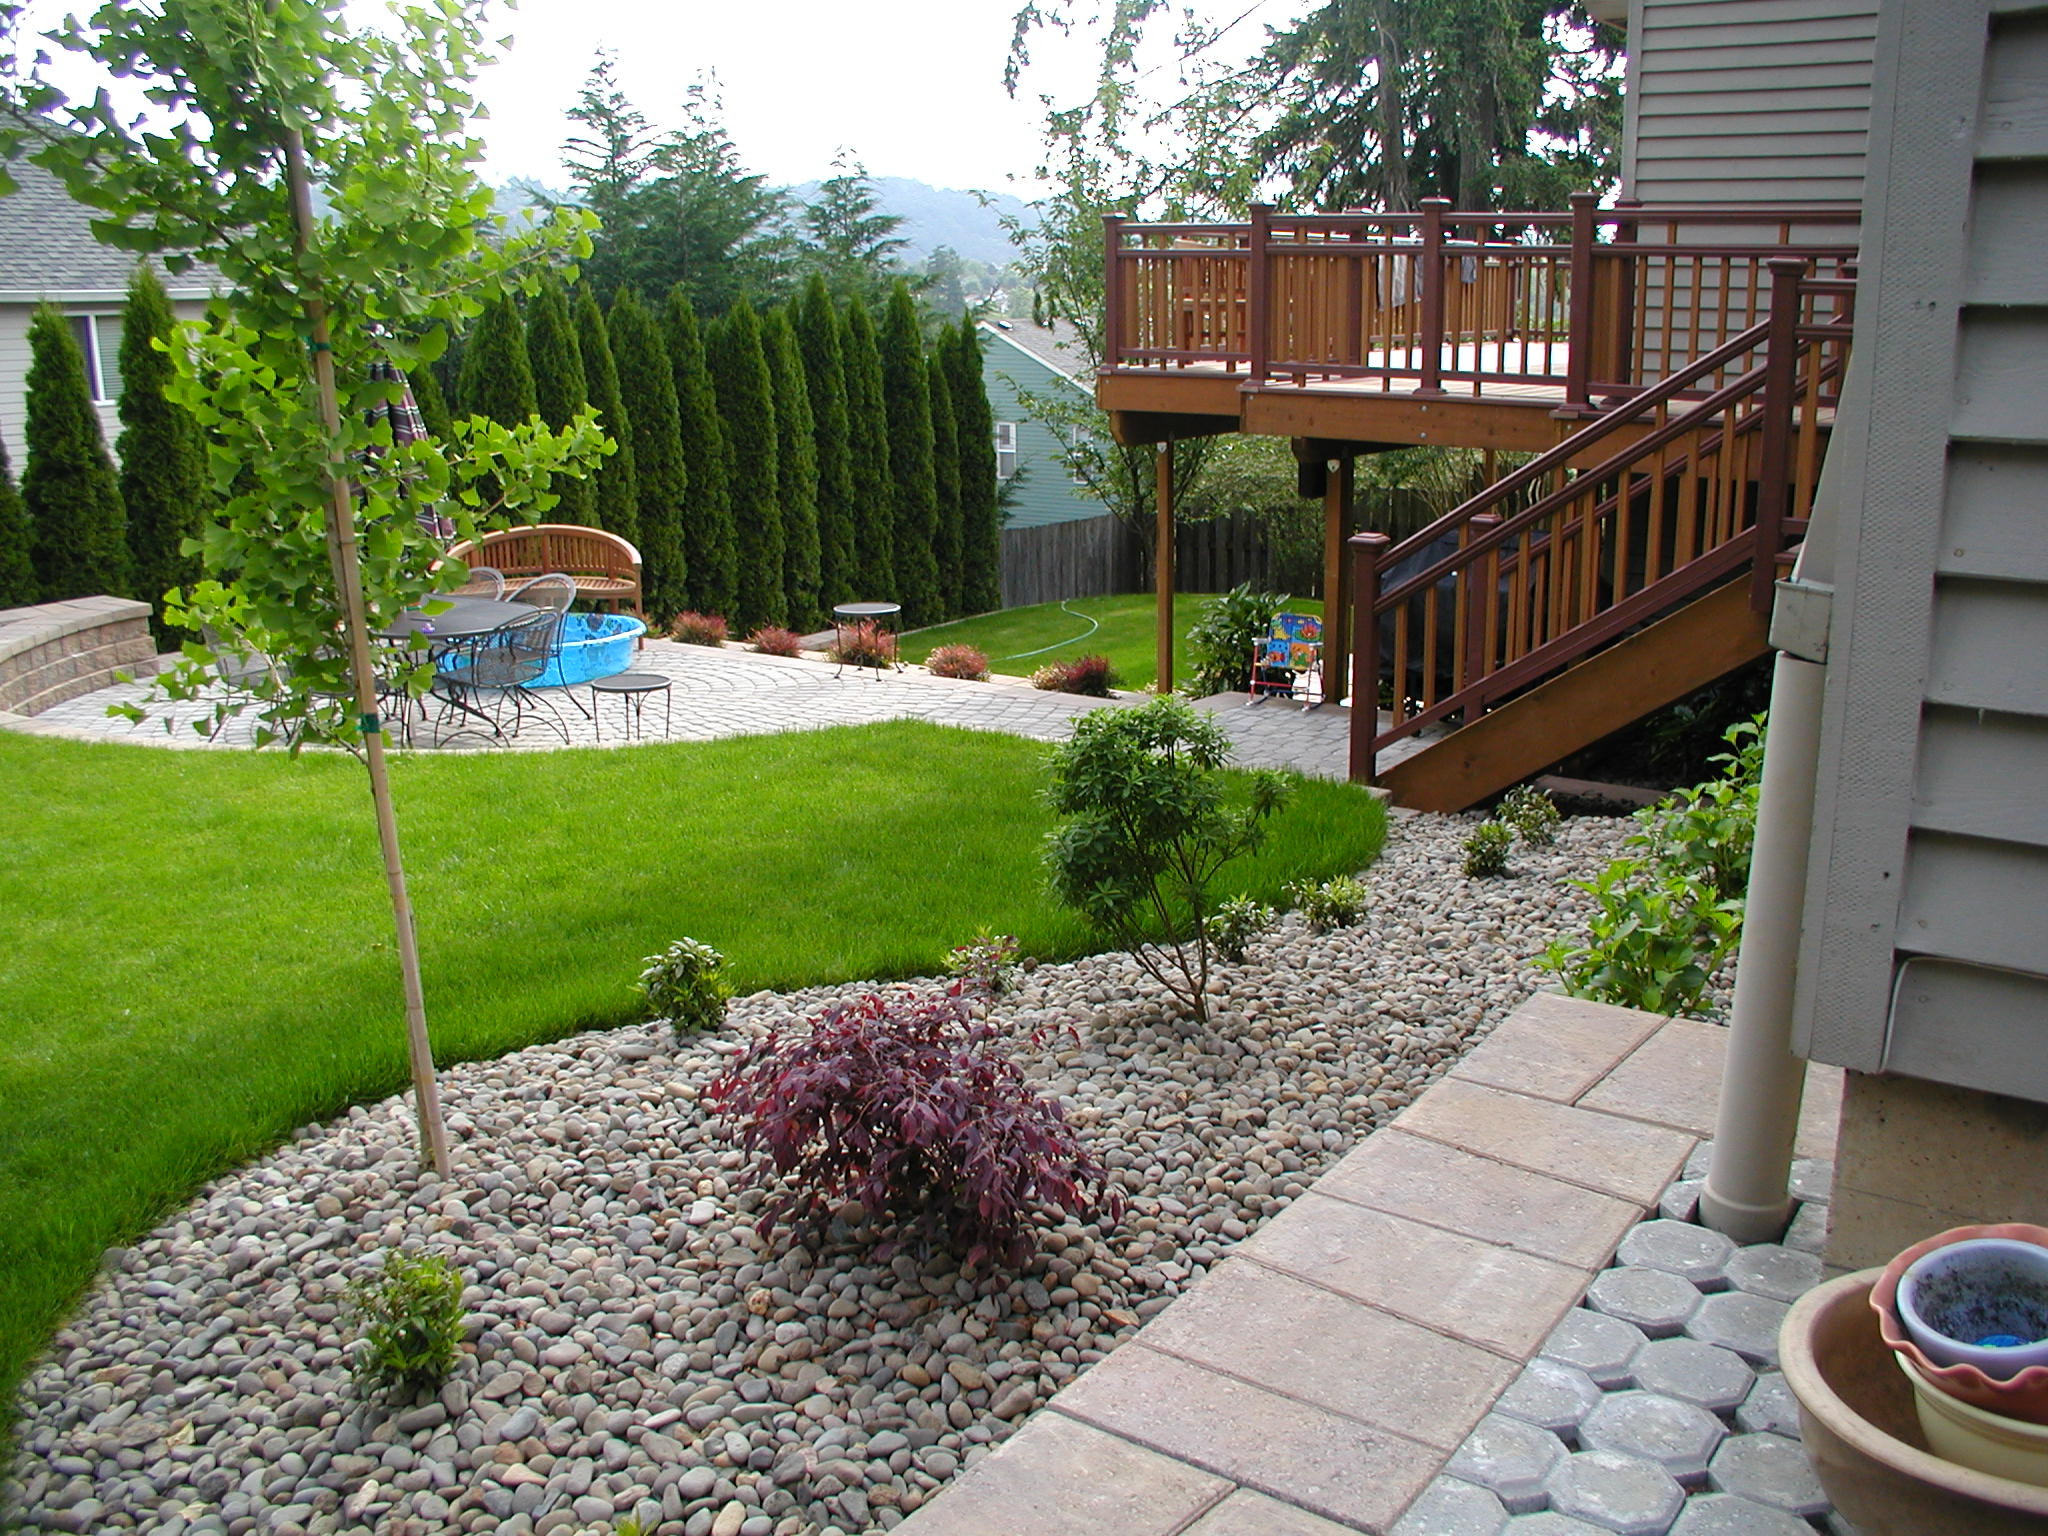 Backyard Backyard Landscape Design Ideas Low Cost Backyard Landscape within 12 Awesome Tricks of How to Makeover Plan Backyard Landscaping